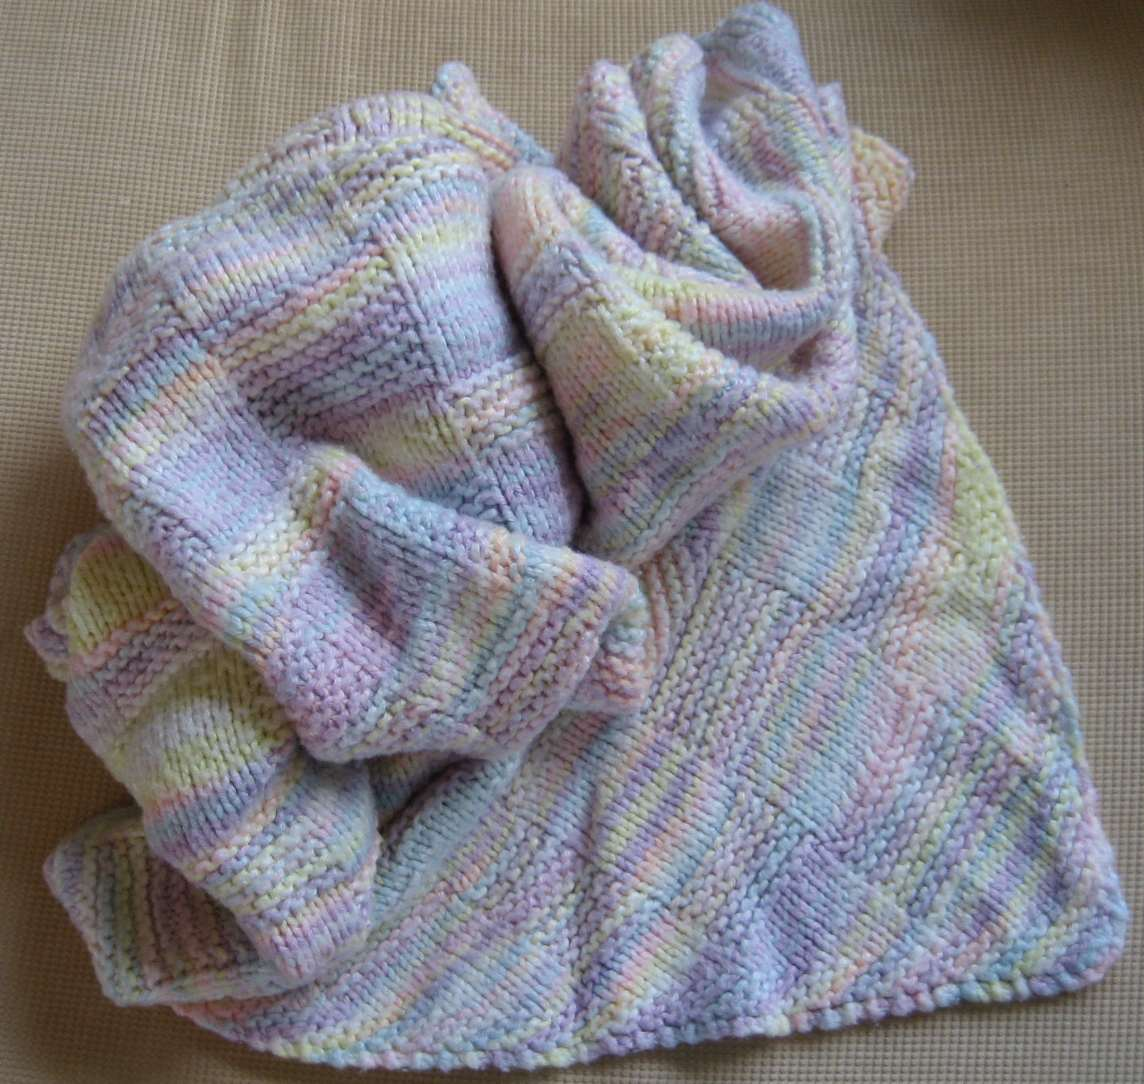 Knitting Patterns For Baby Blankets : knit baby blanket-Knitting Gallery